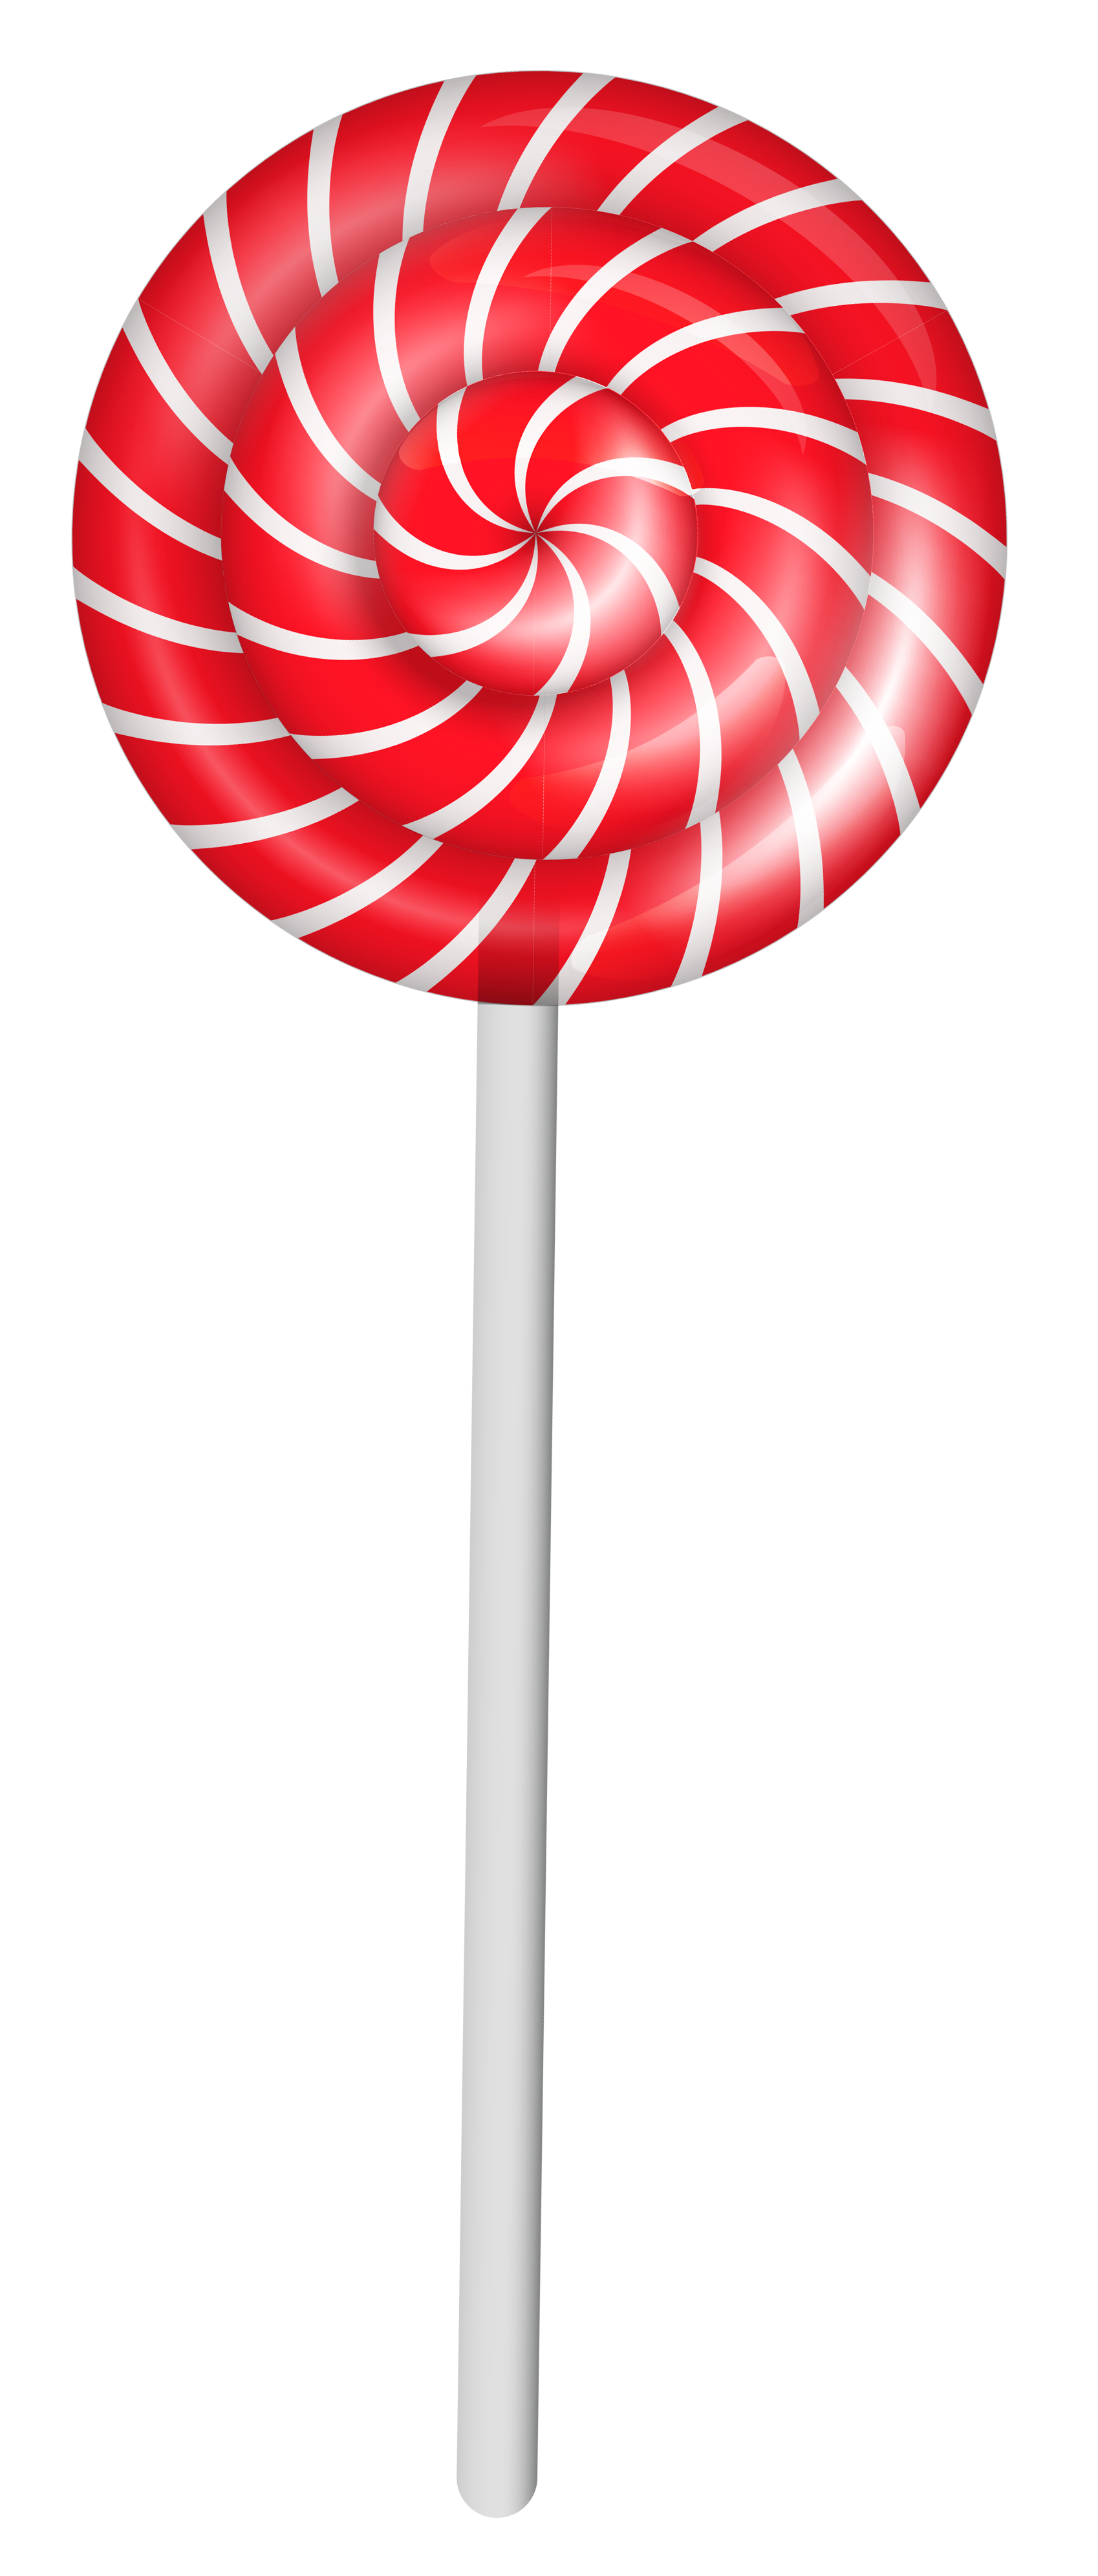 Heart lollipop png. Striped clipart picture gallery